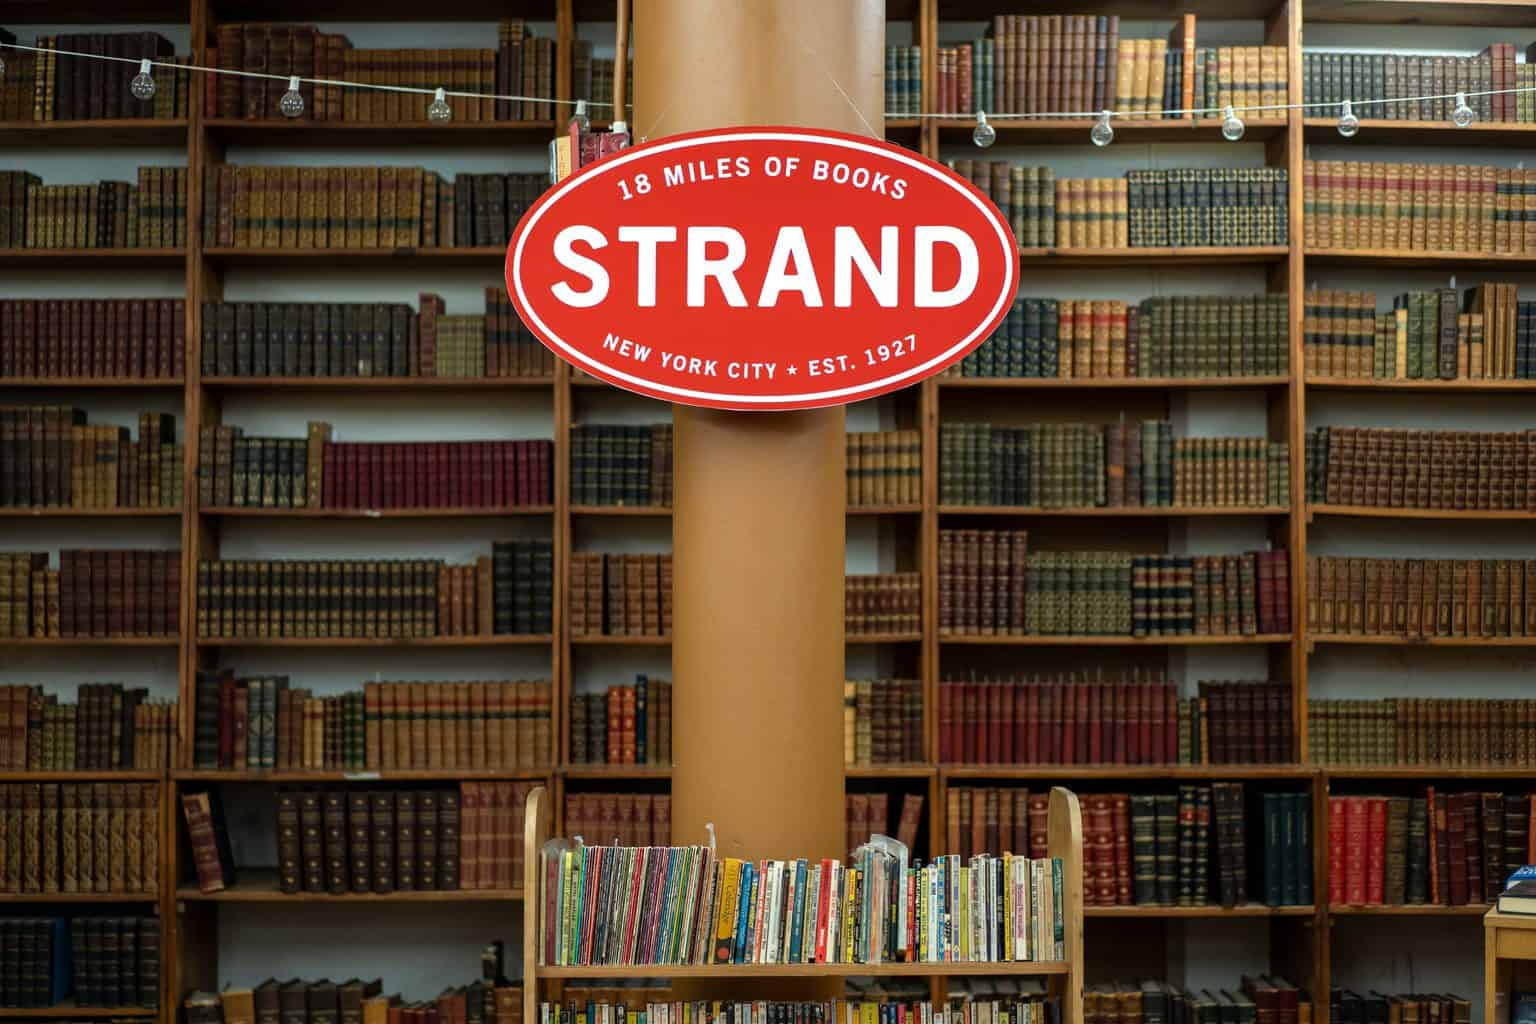 The endless stacks of books that you'll discover in New York City's Strand Bookstore.